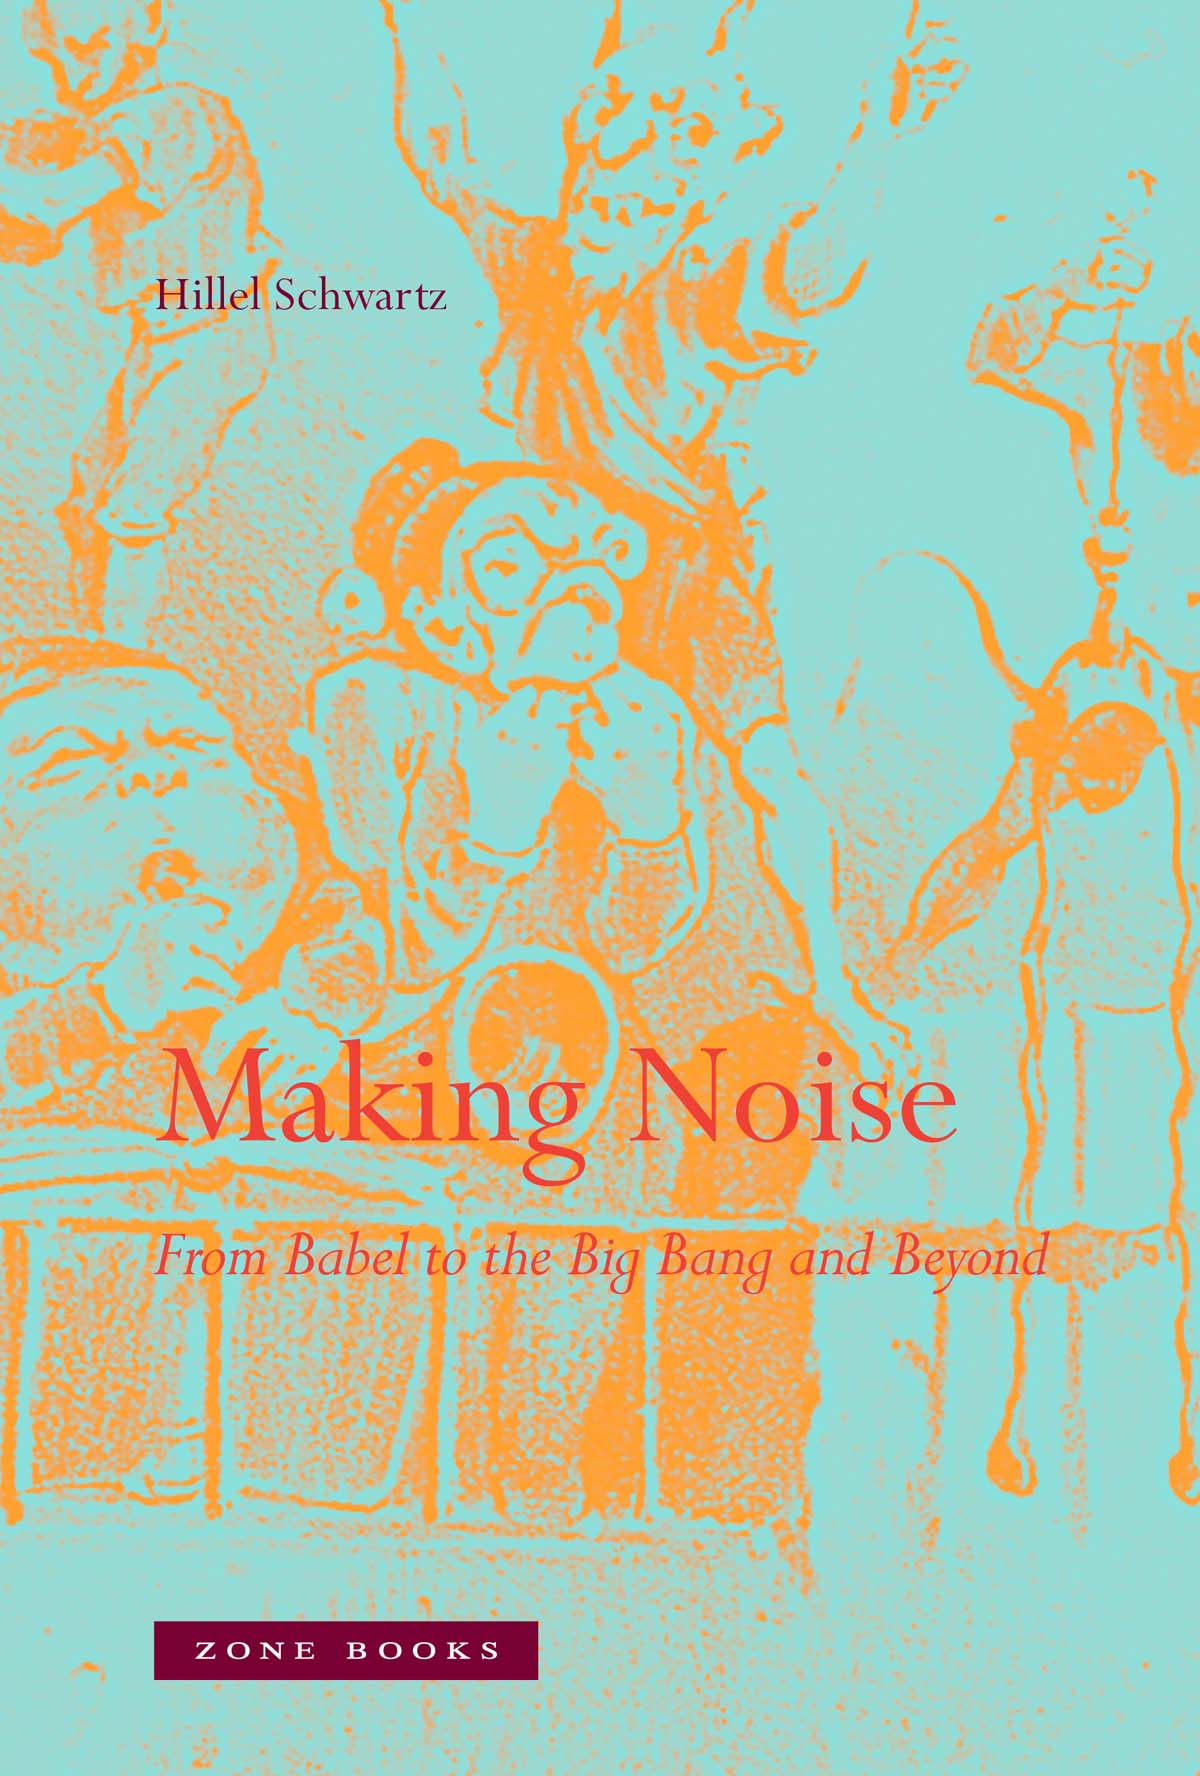 Image result for making noise book